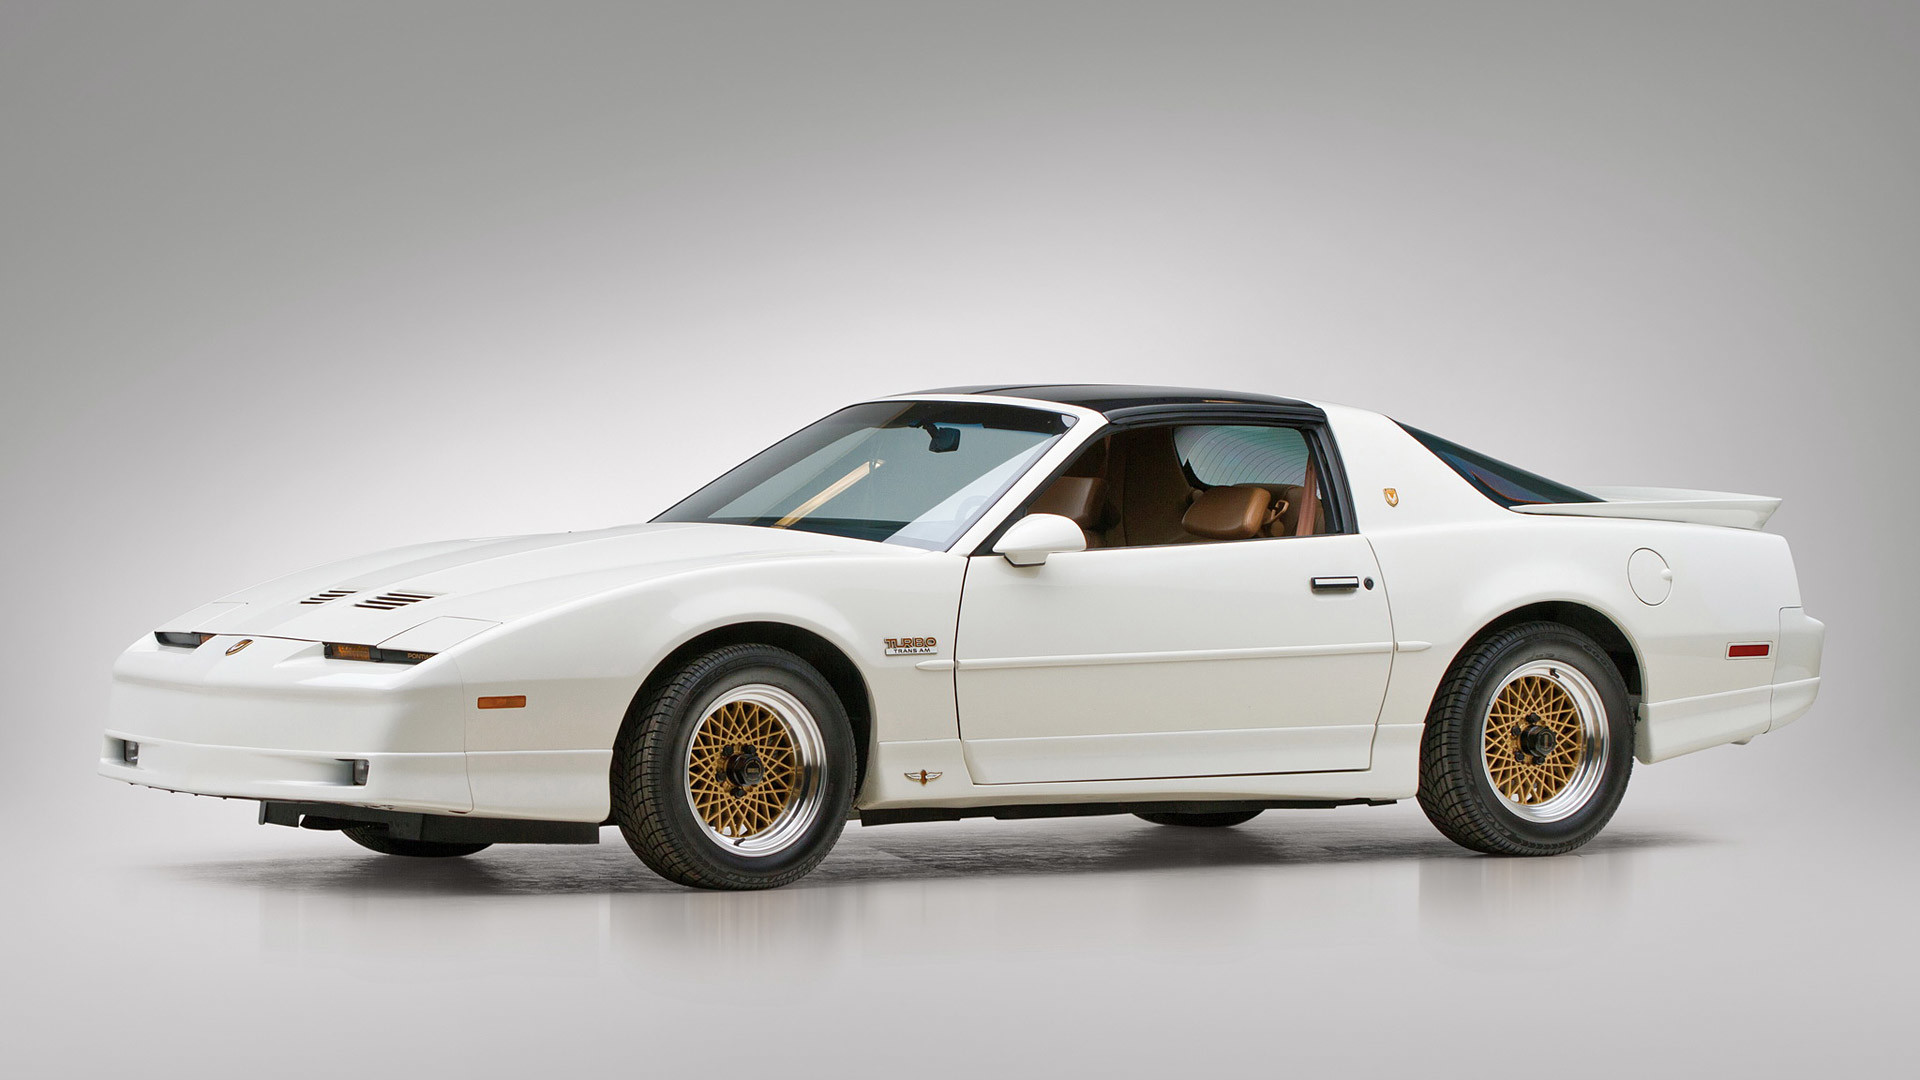 Res: 1920x1080, 1989 Pontiac Firebird Turbo Trans-Am picture